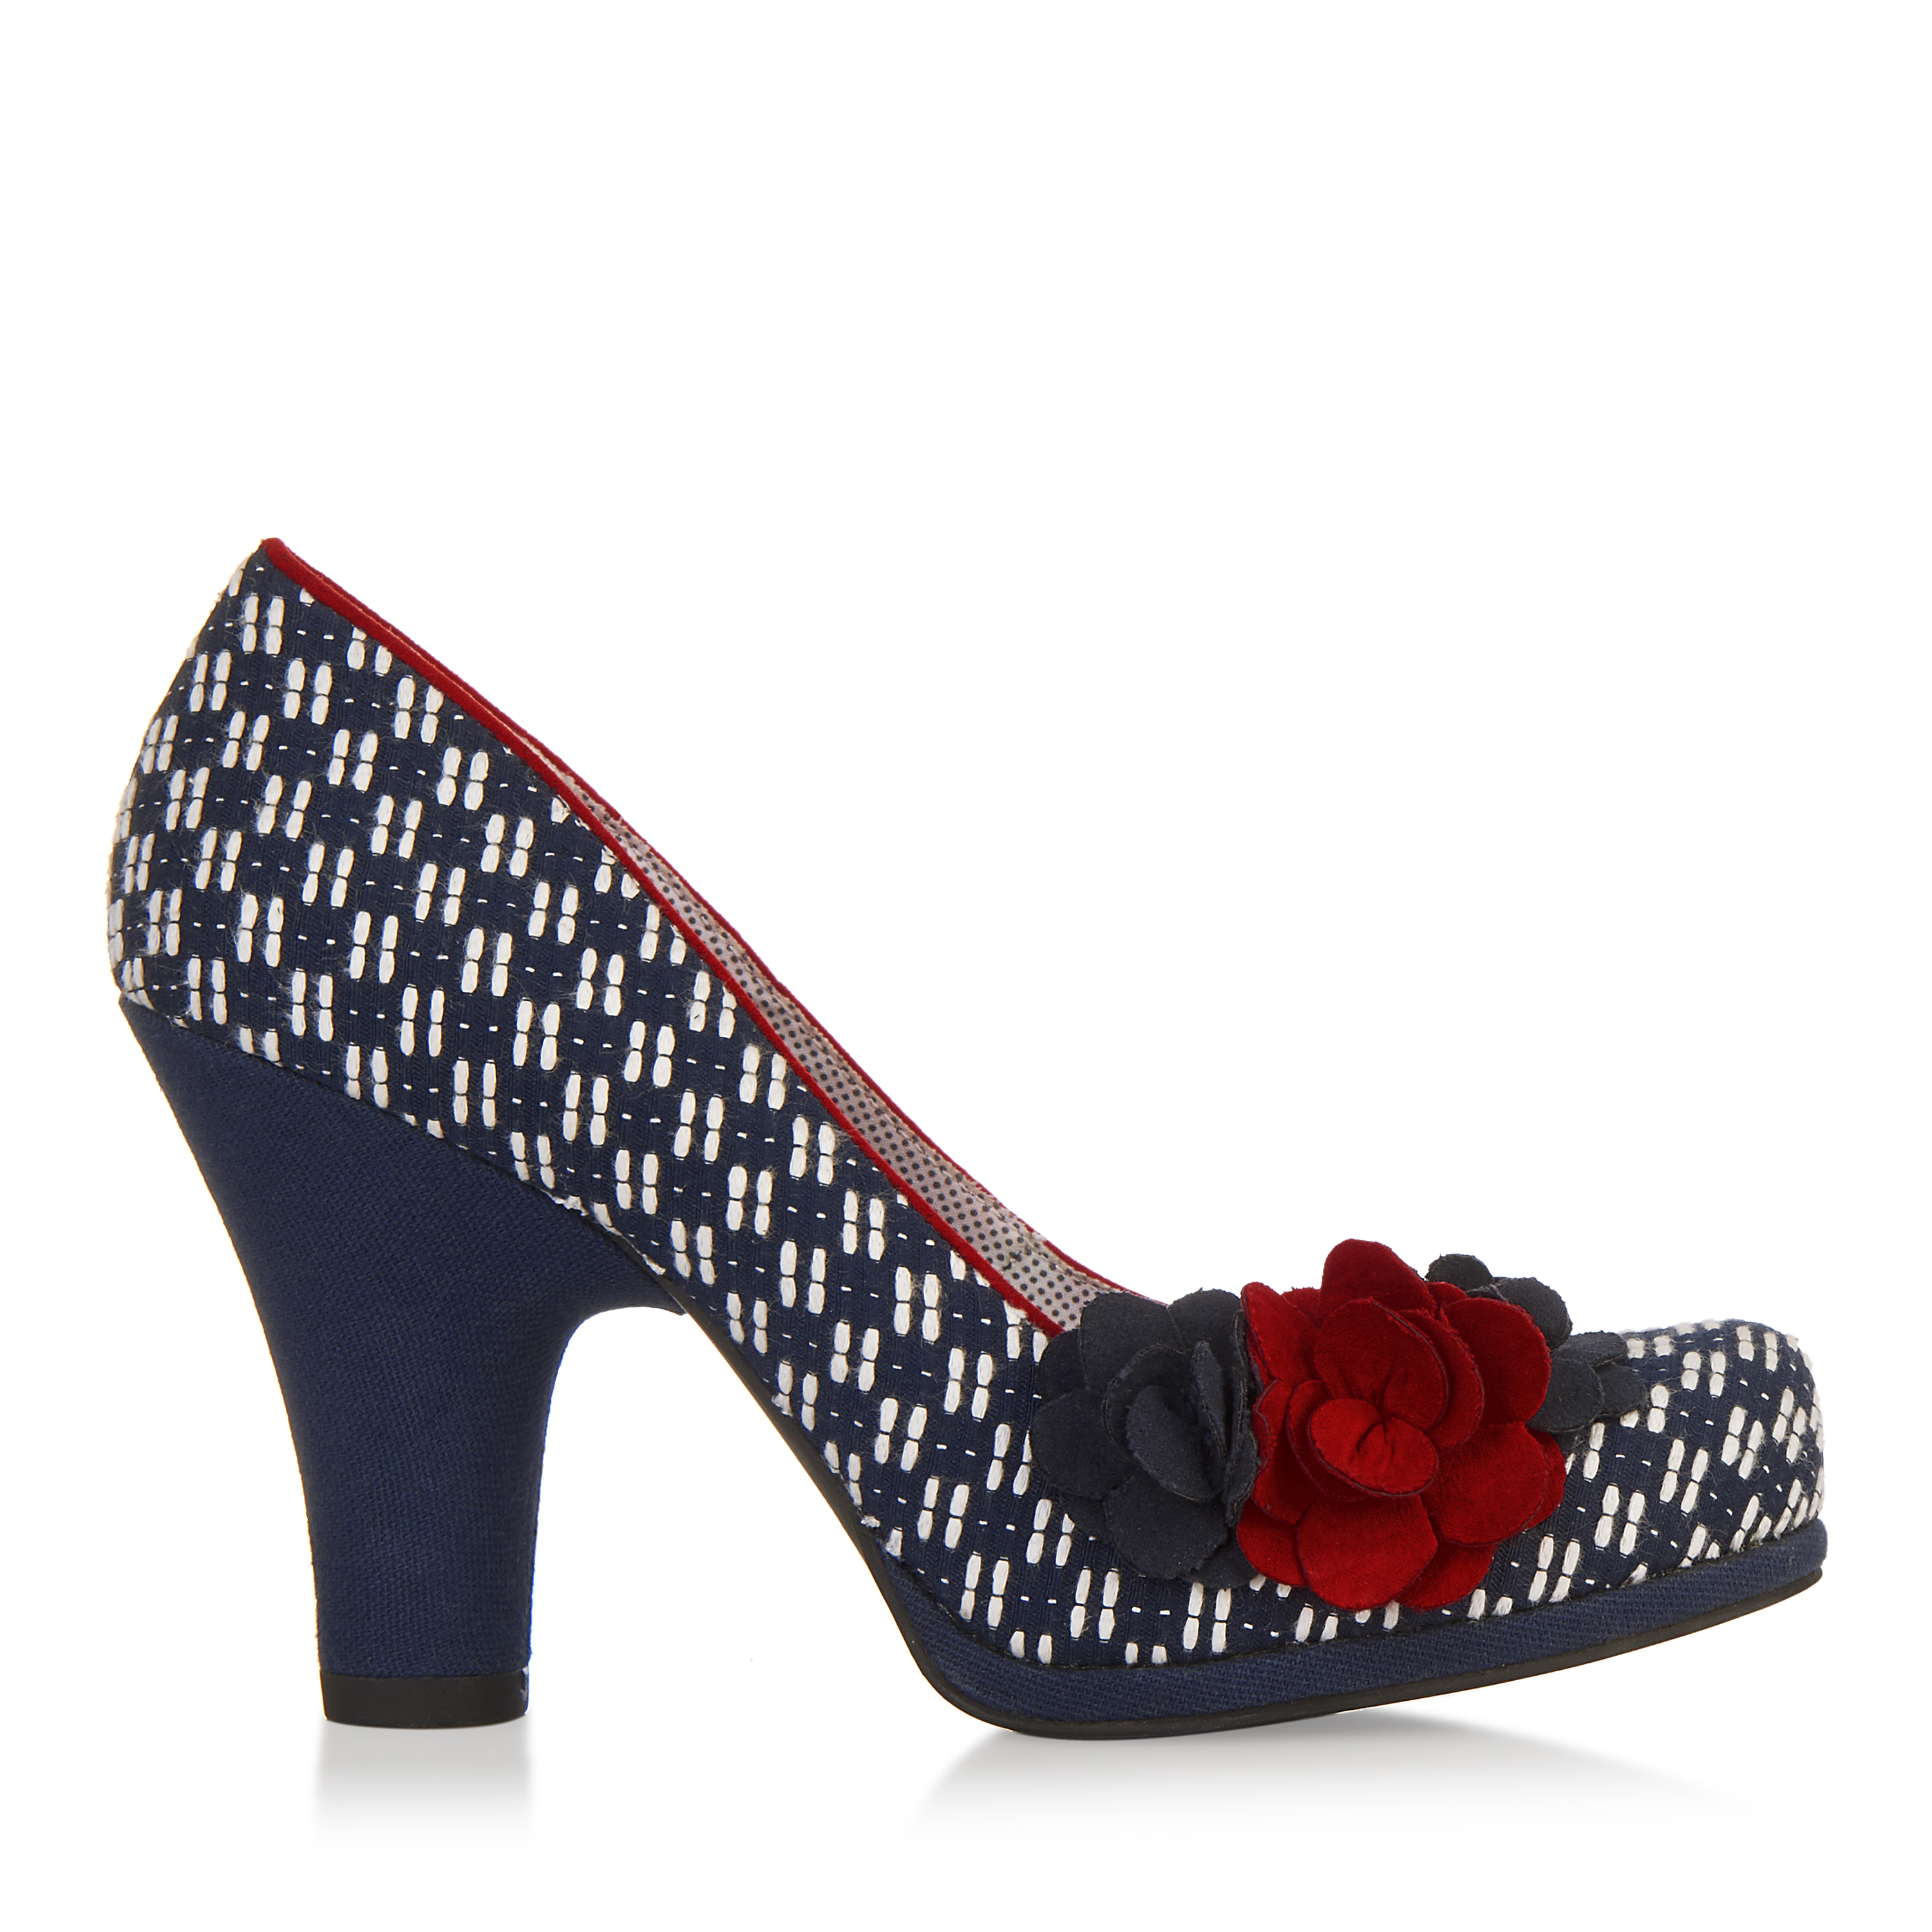 cdd64e91952 Details about NEW Ruby Shoo Eva Court Shoes Noir Navy Red Sand Black Petrol  / Sky Blue UK3-9